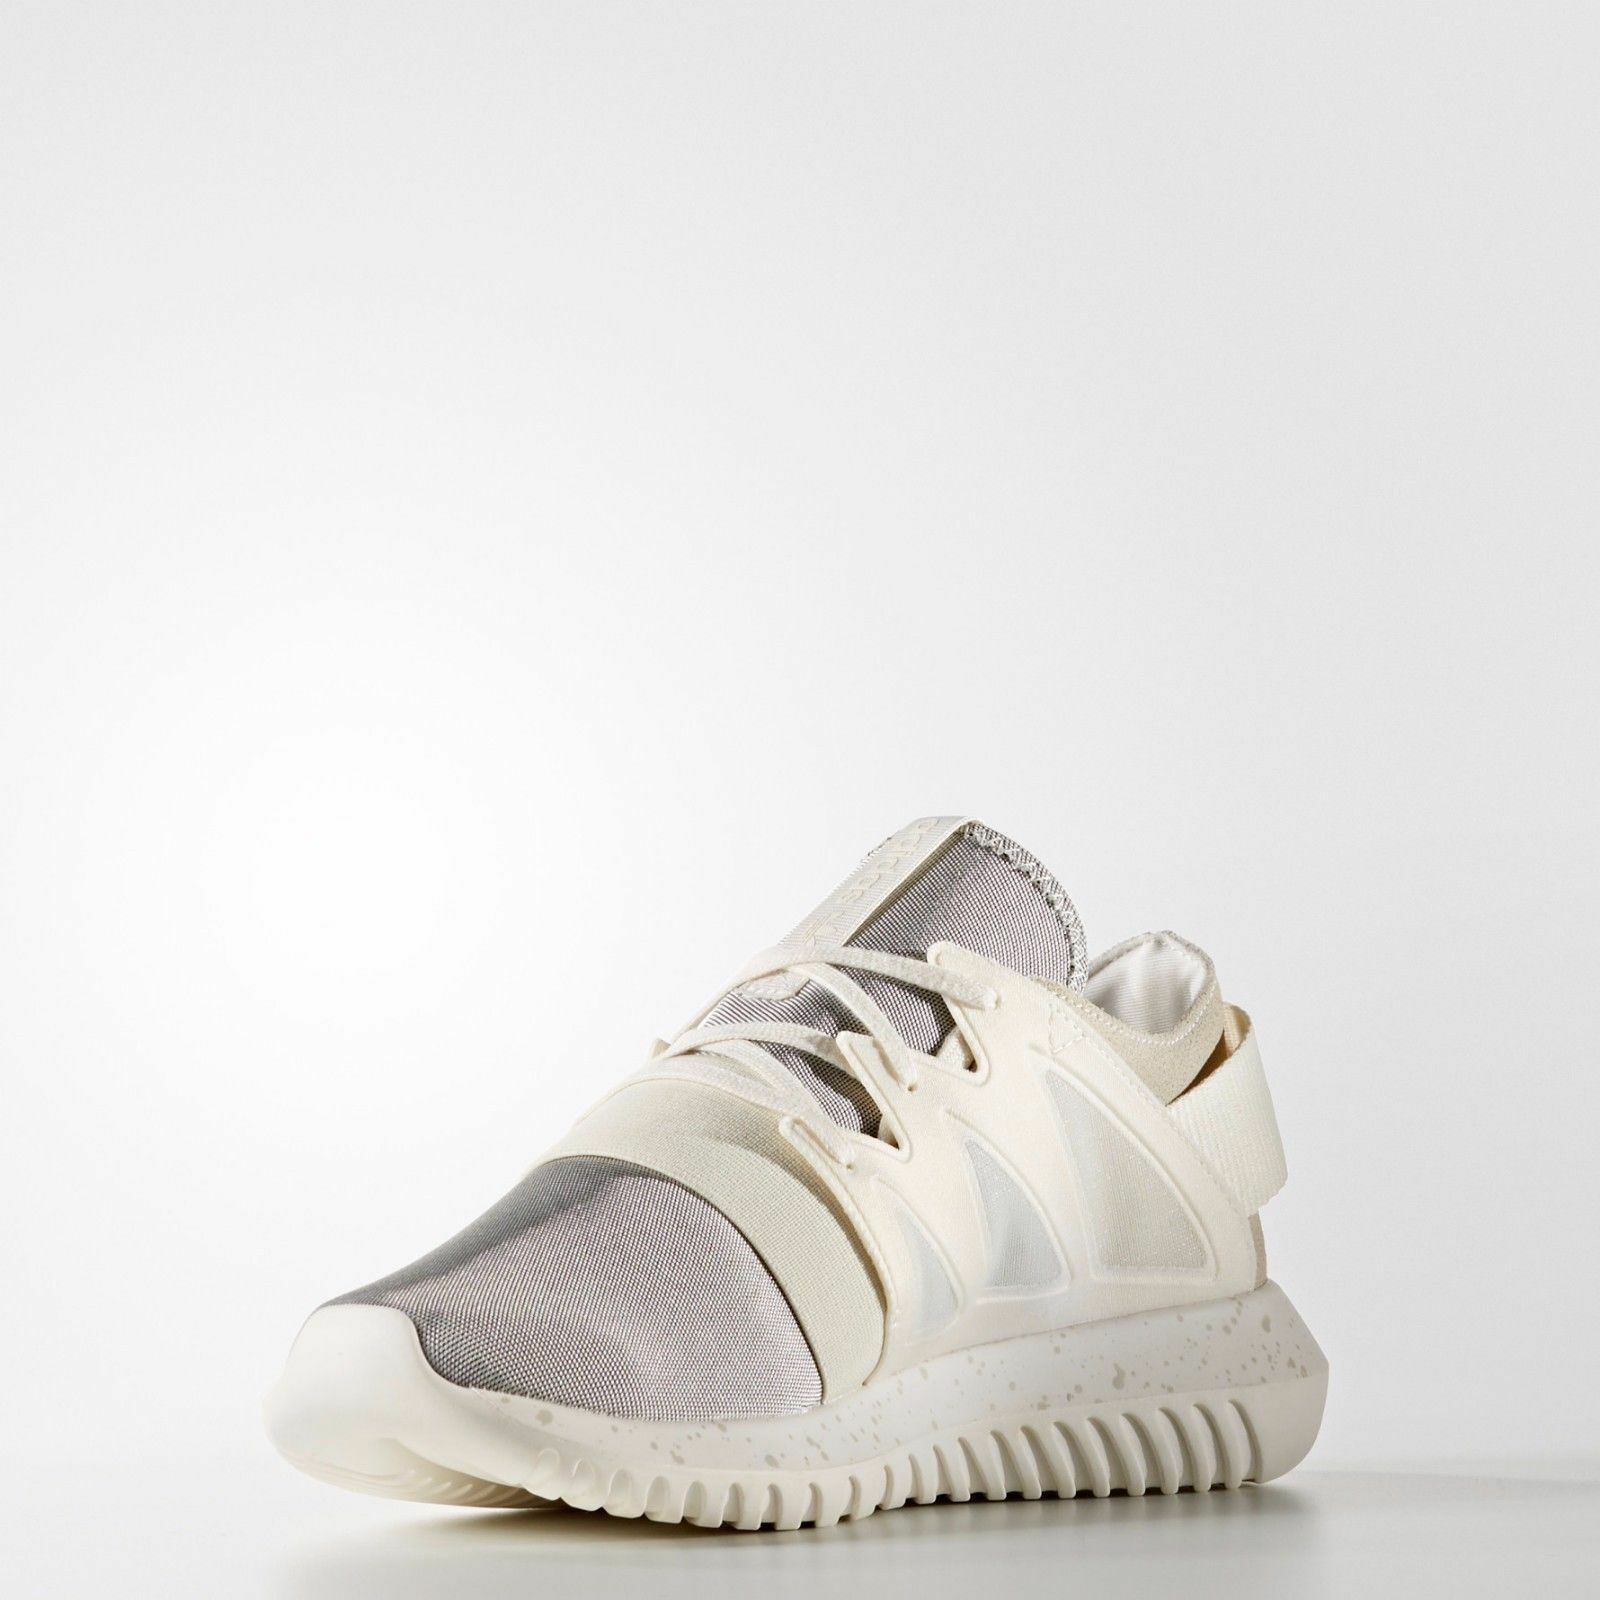 ADIDAS Tubular Viral Chalk Running shoes Sneakers Size 5-13 White S75914